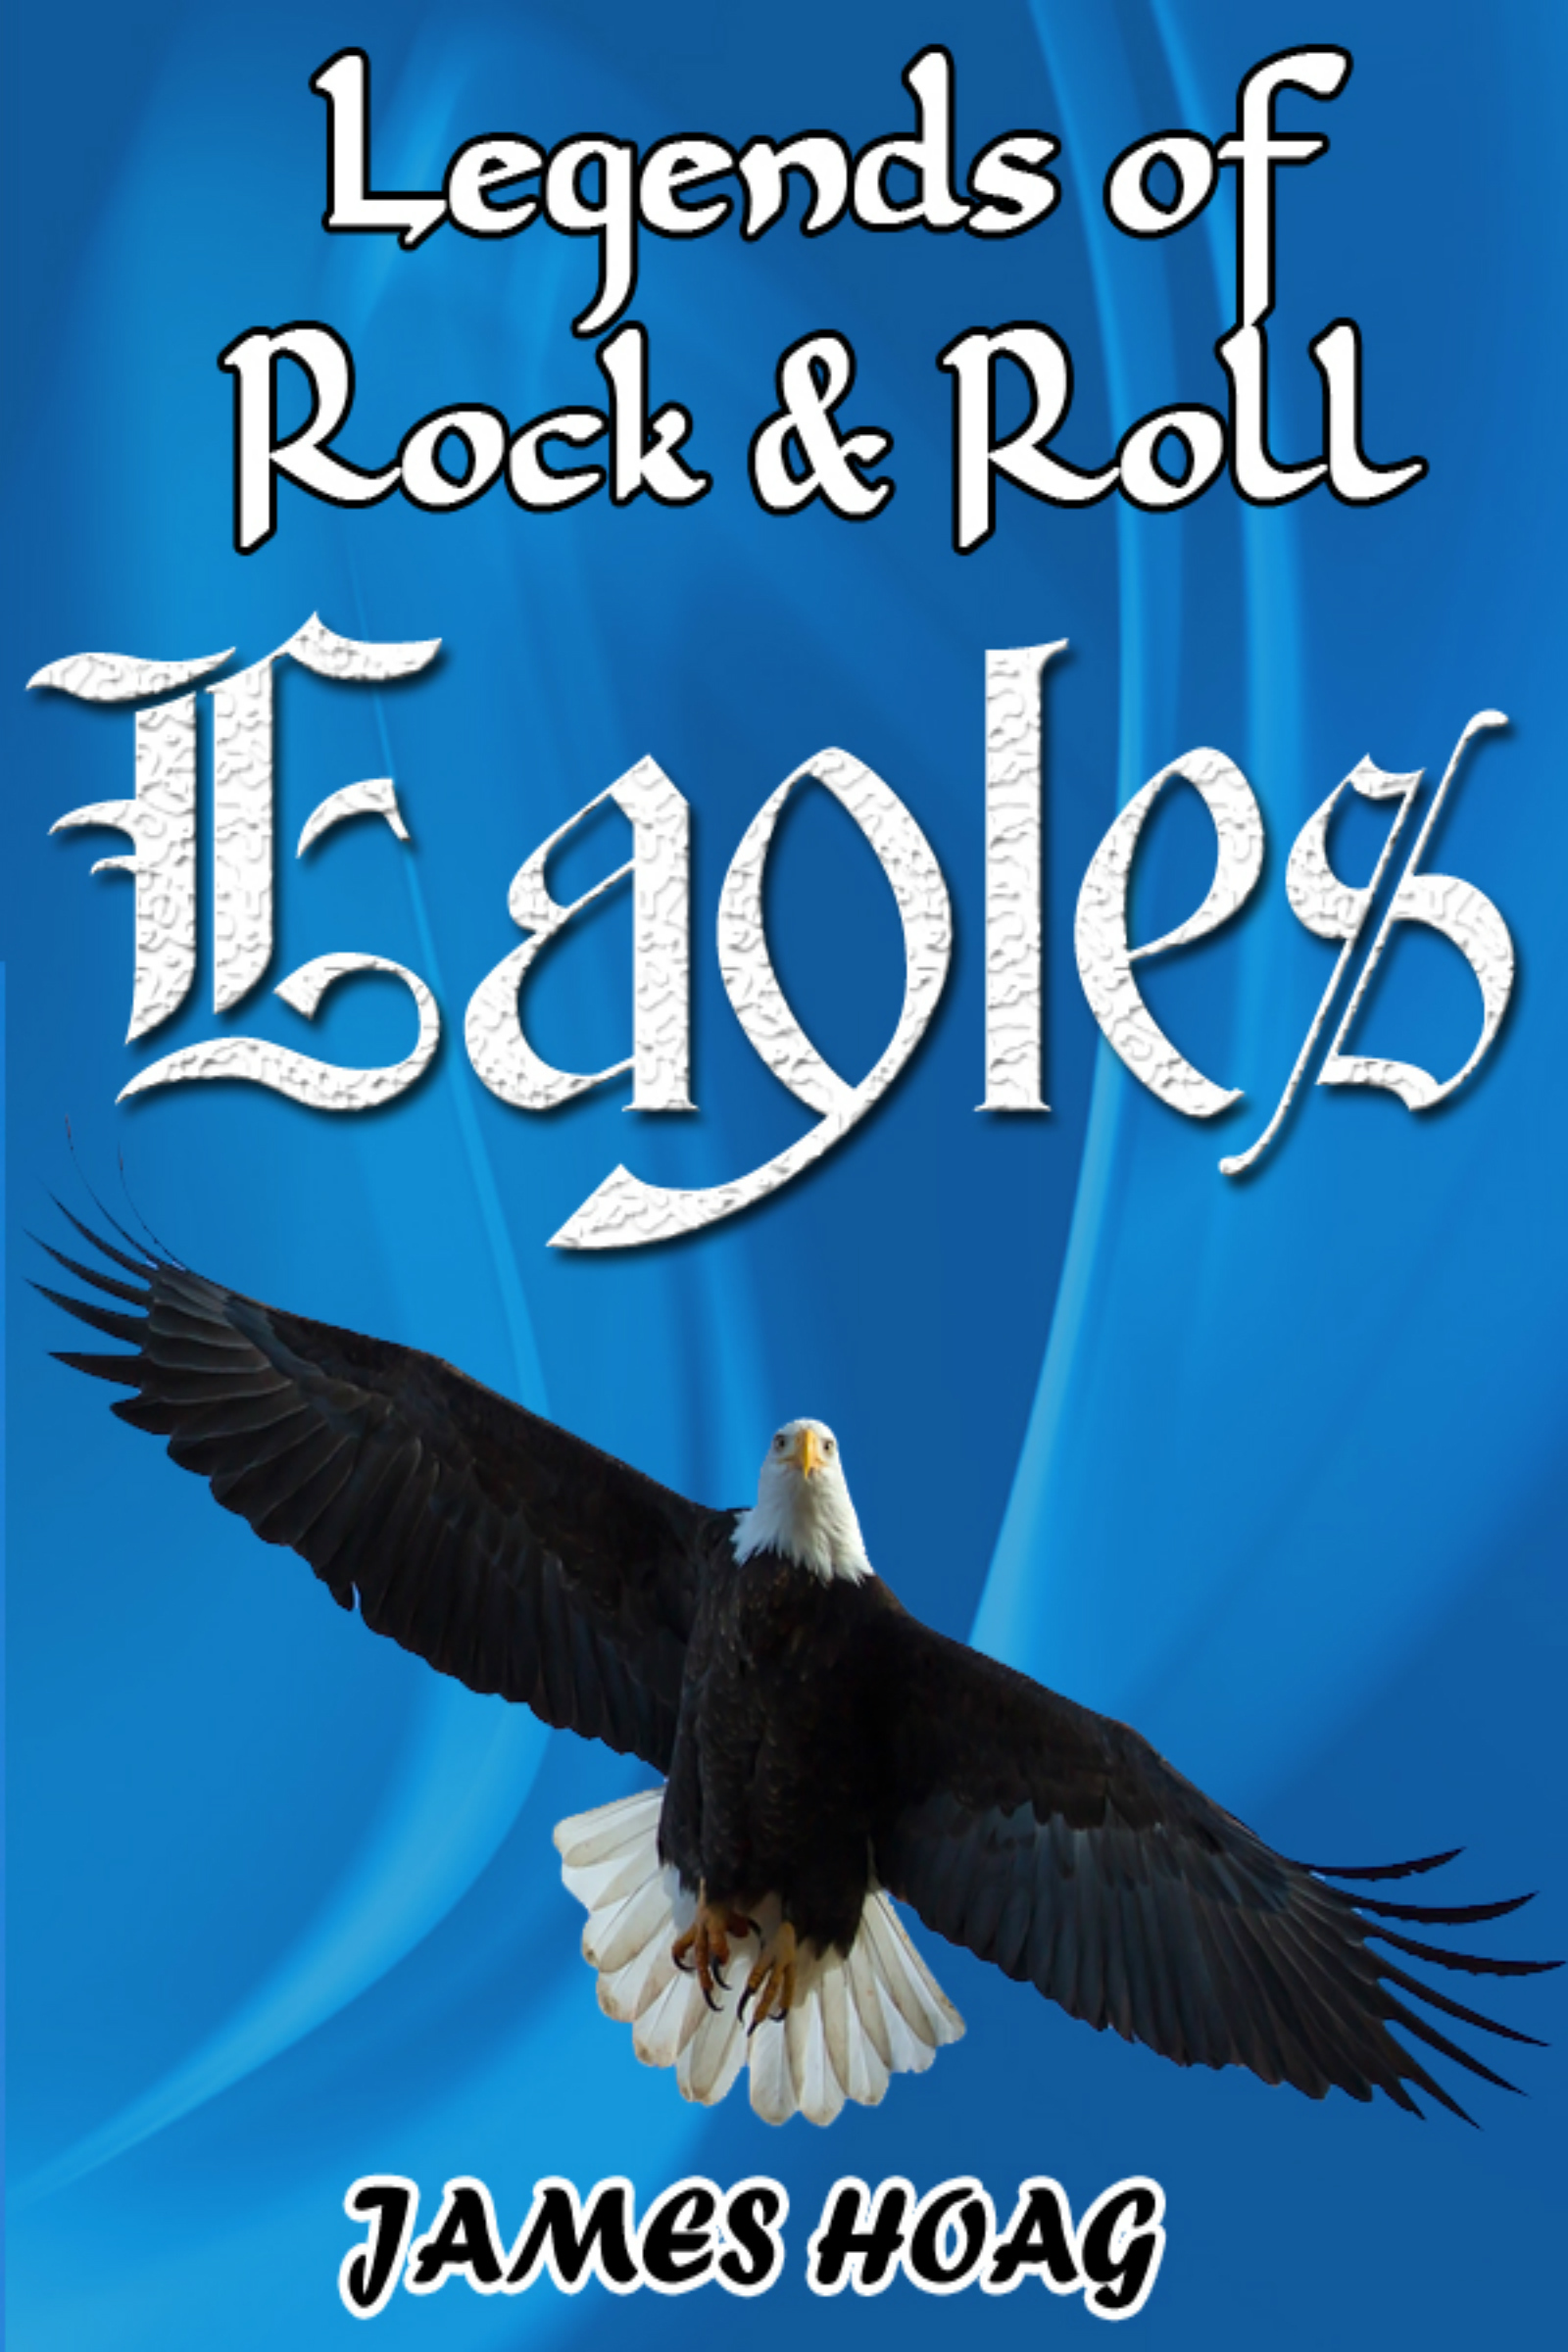 Legends of Rock & Roll: Eagles